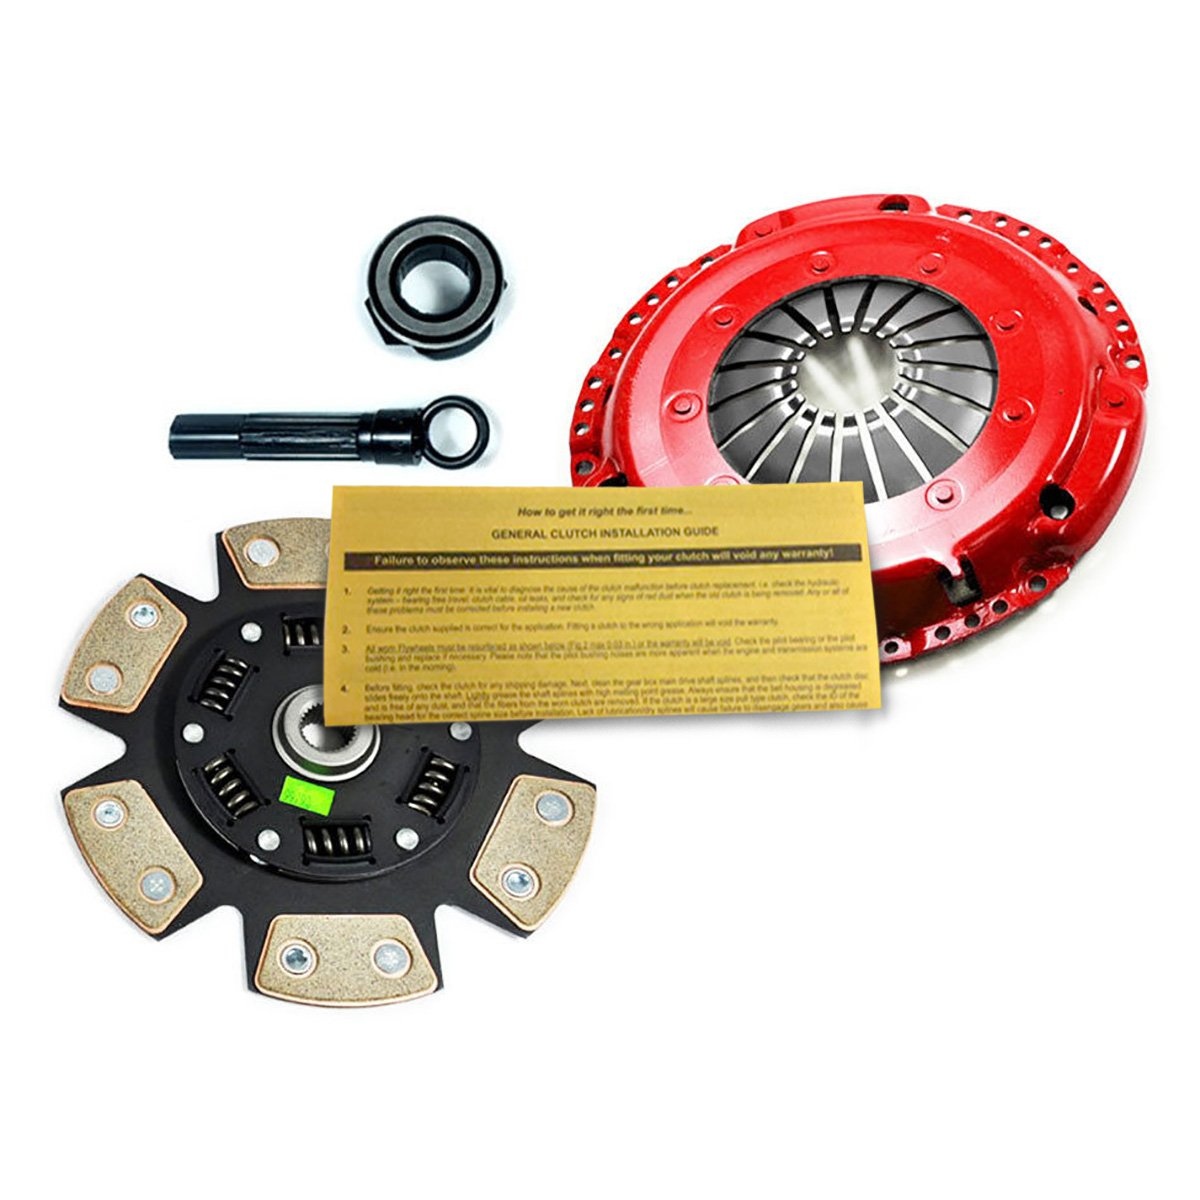 Amazon.com: EFT STAGE 3 SPORT CLUTCH KIT 96-99 VW GOLF JETTA PASSAT 1.9L TDI TURBO DIESEL: Automotive